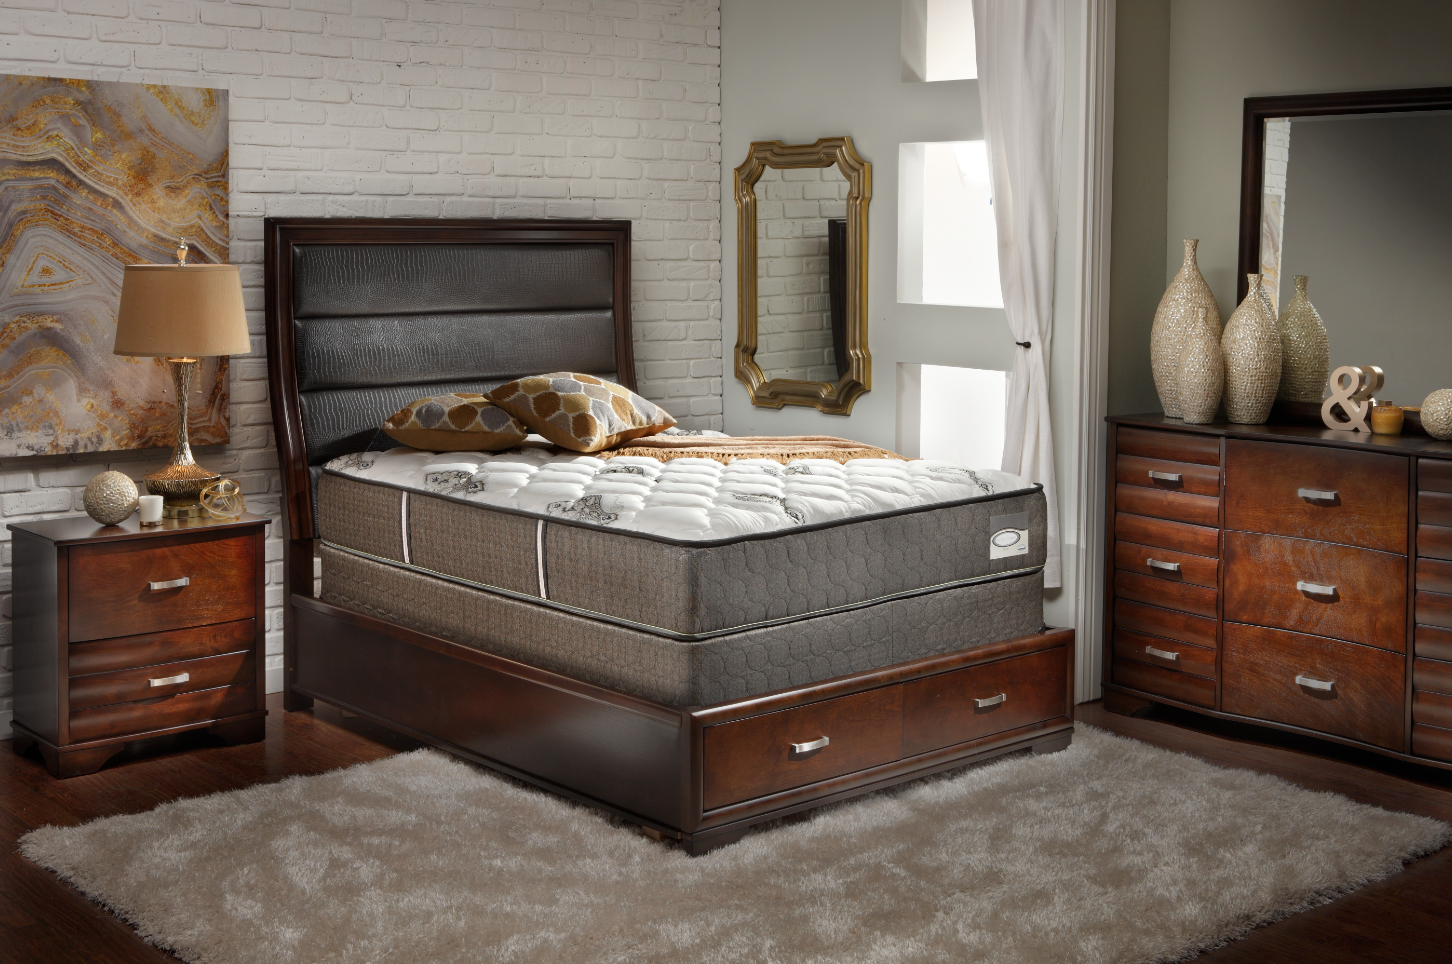 Denver Mattress Company Furniture Store Yuma Az 85365